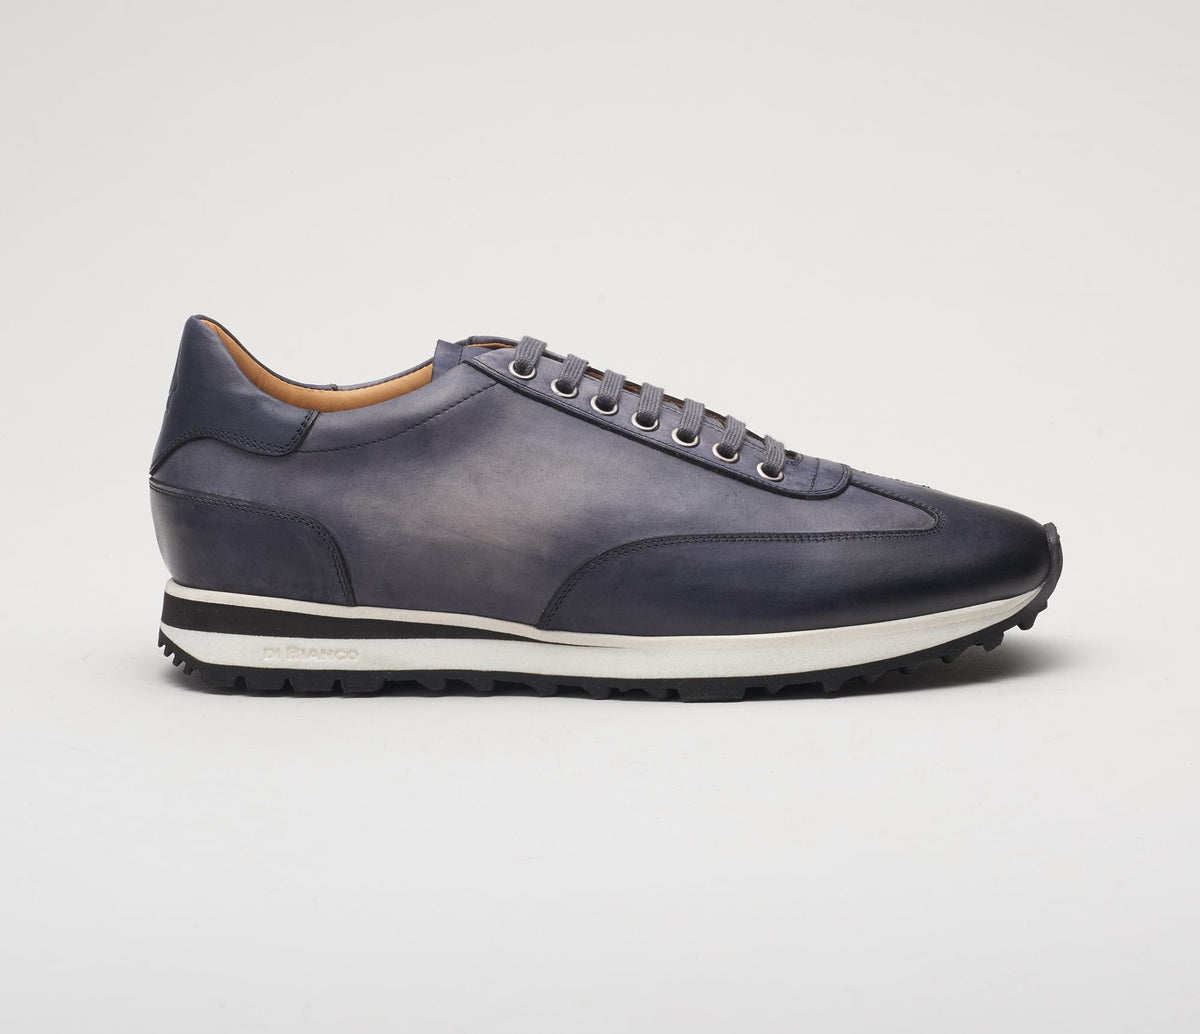 Trieste Leather Sneaker in Smoke